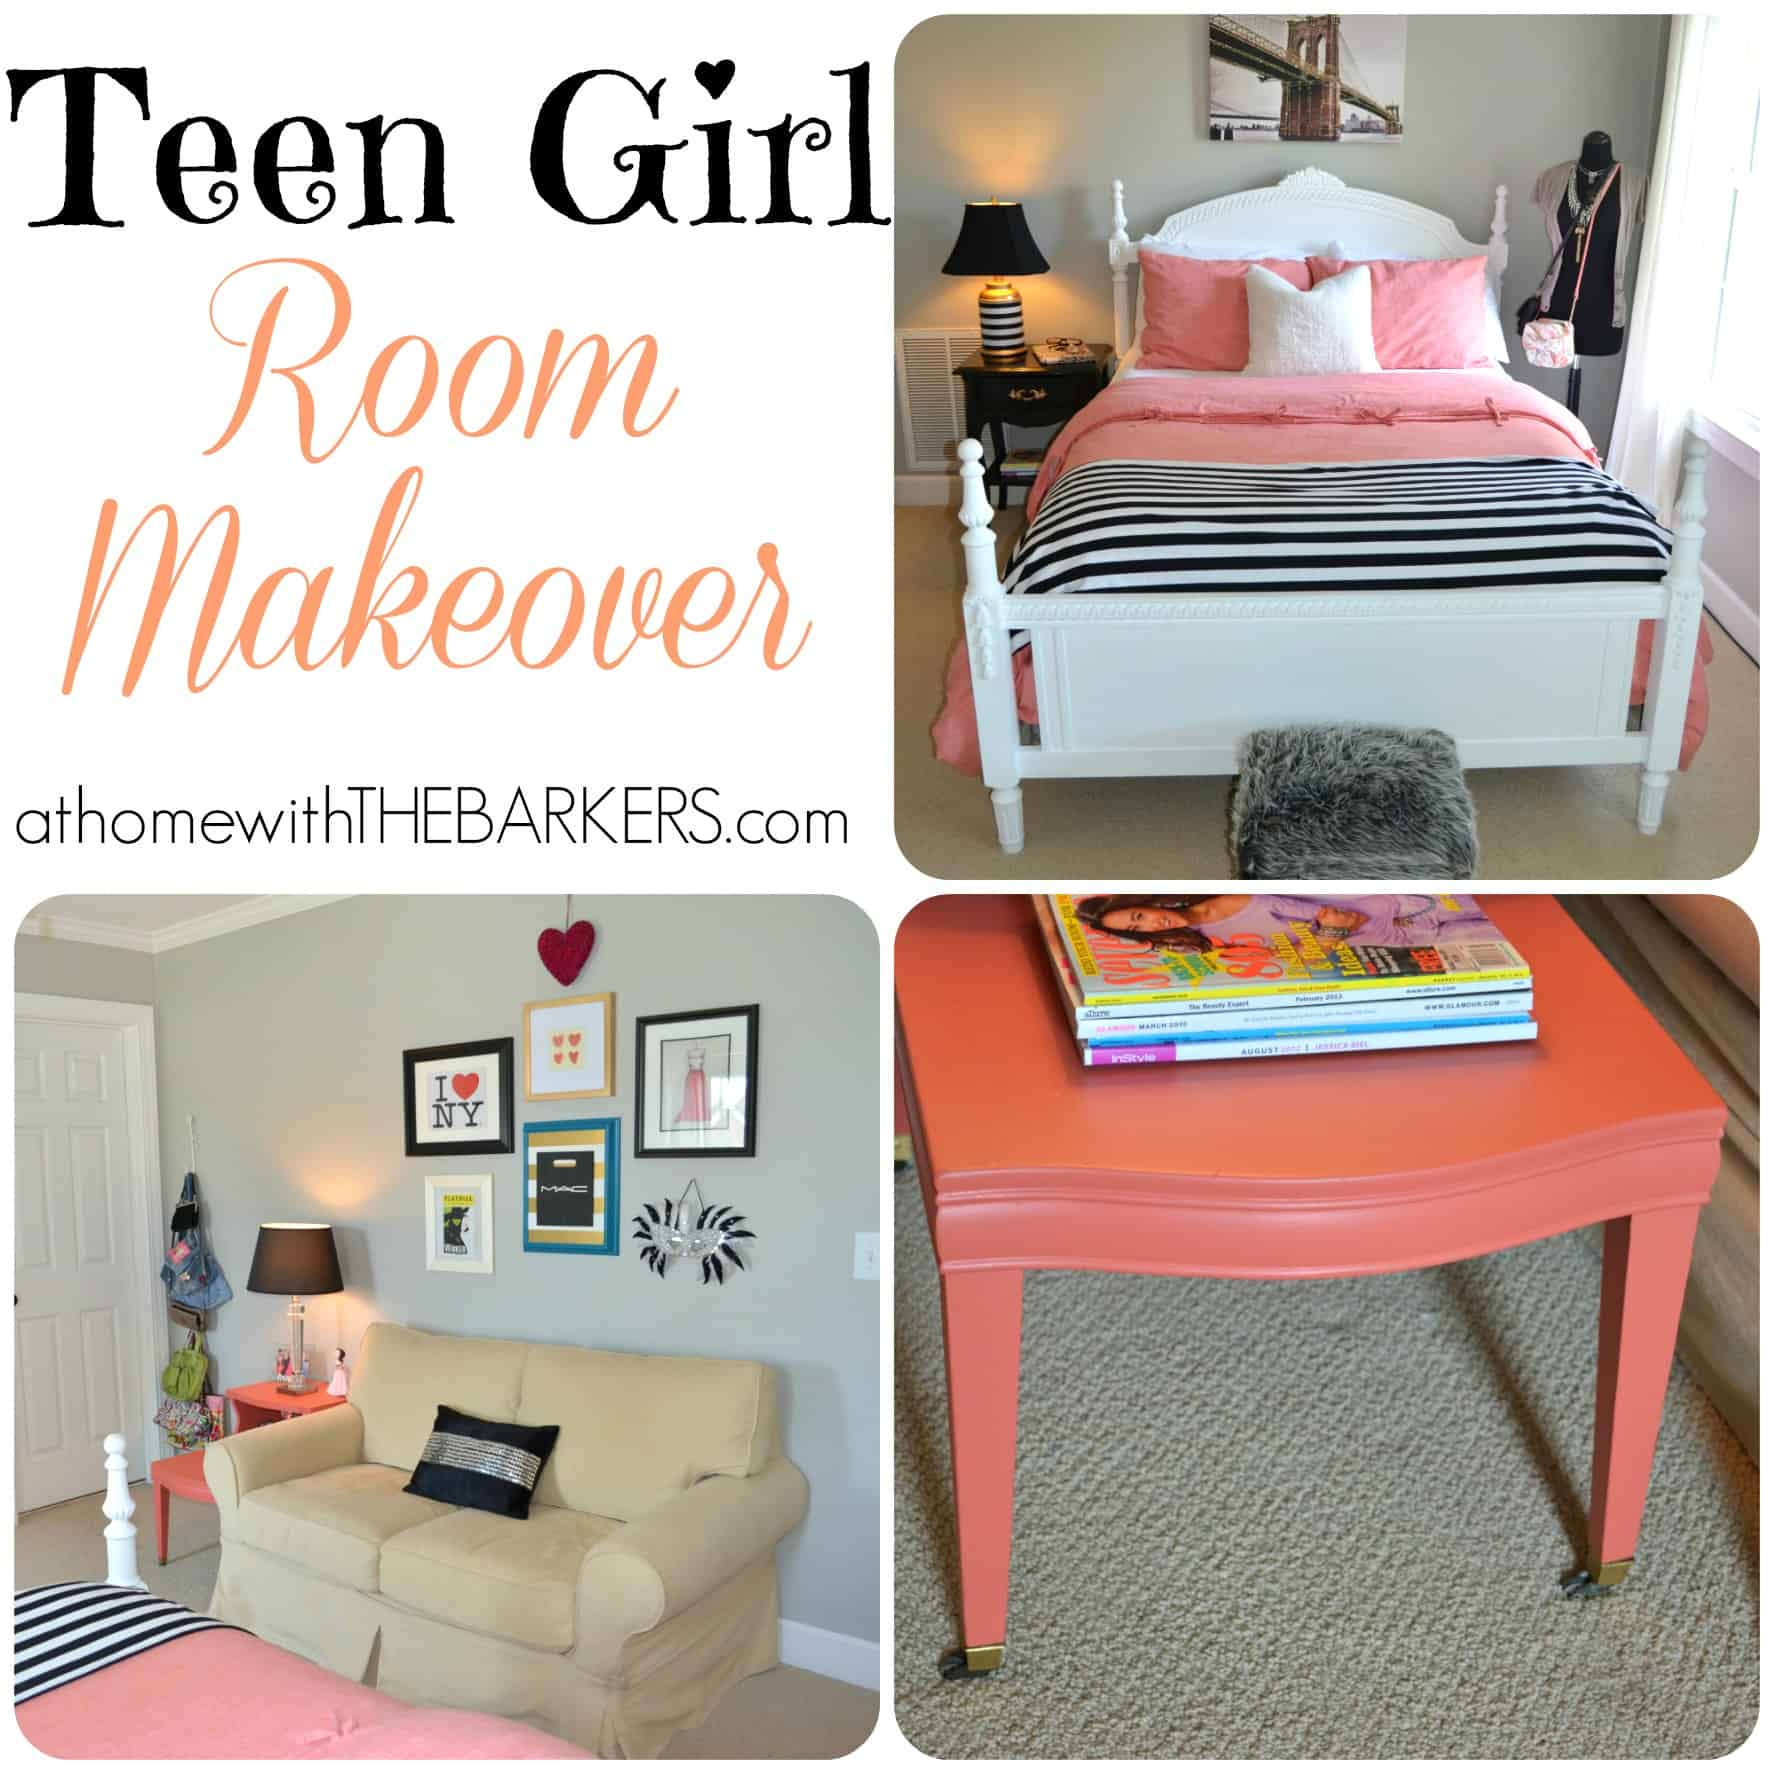 Teen GIrl Room Makeover Collage